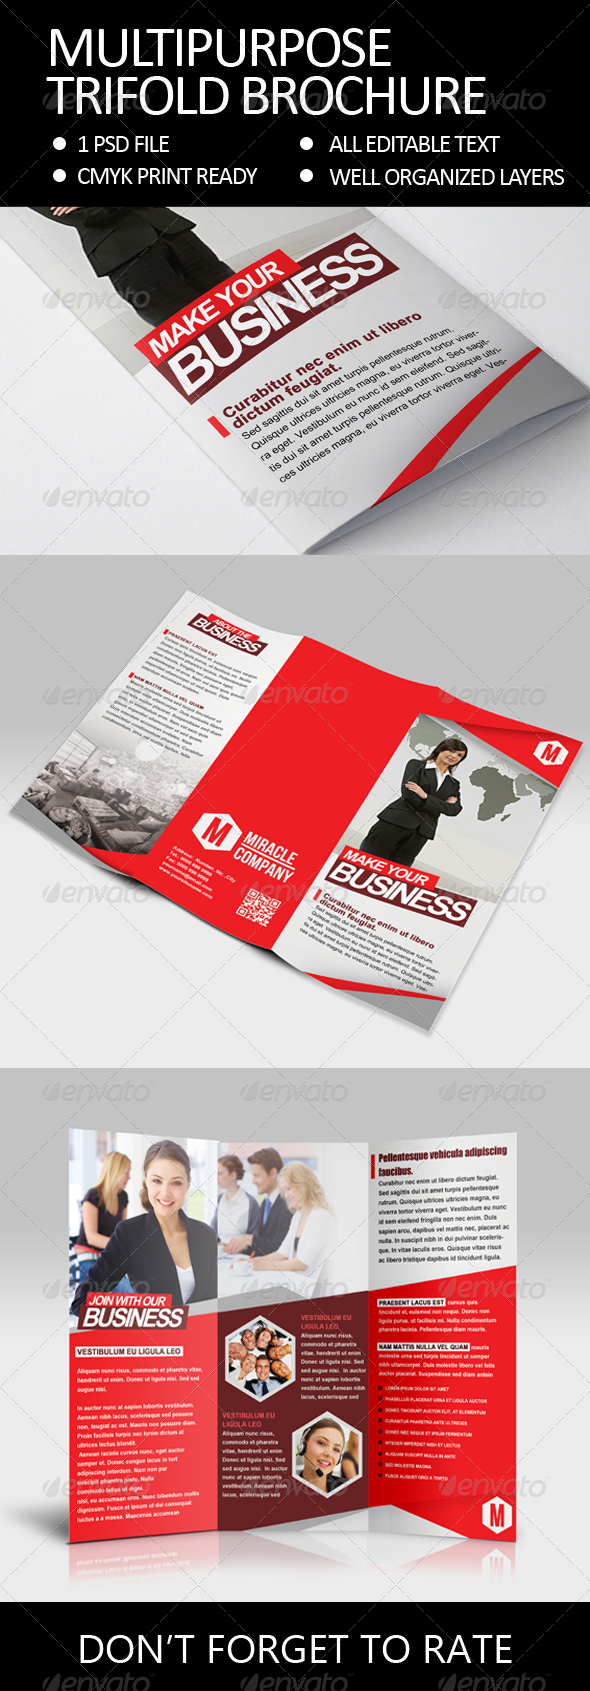 GraphicRiver Multipurpose Trifold Brochure 6099275